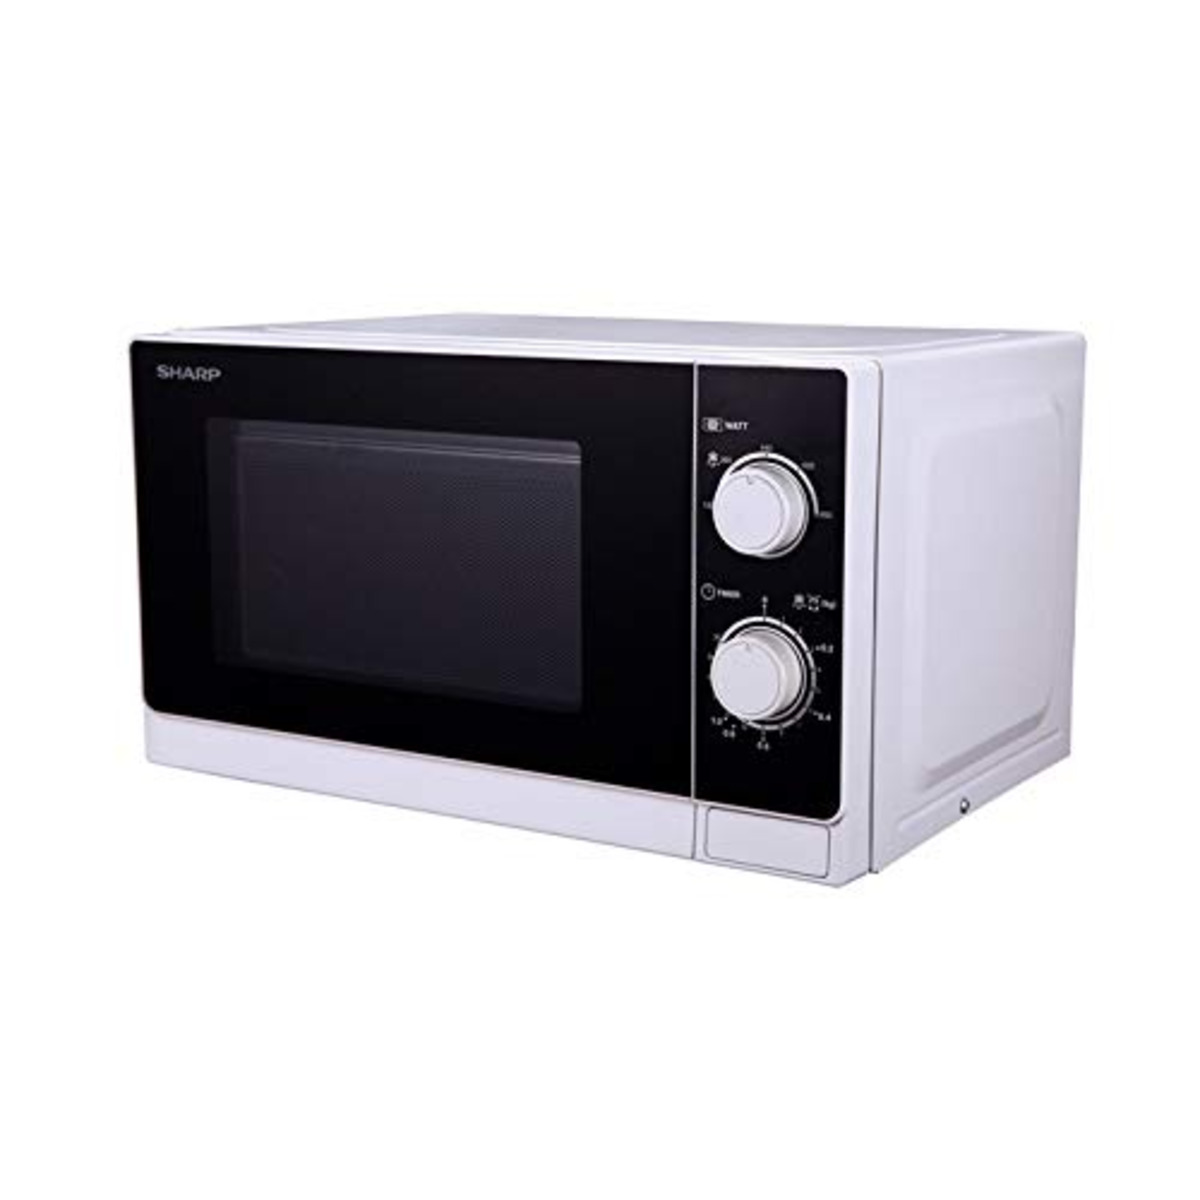 4974019913551-sharp-home-appliances-r-600ww-forno-a-microonde-superficie-piana-microonde-combi